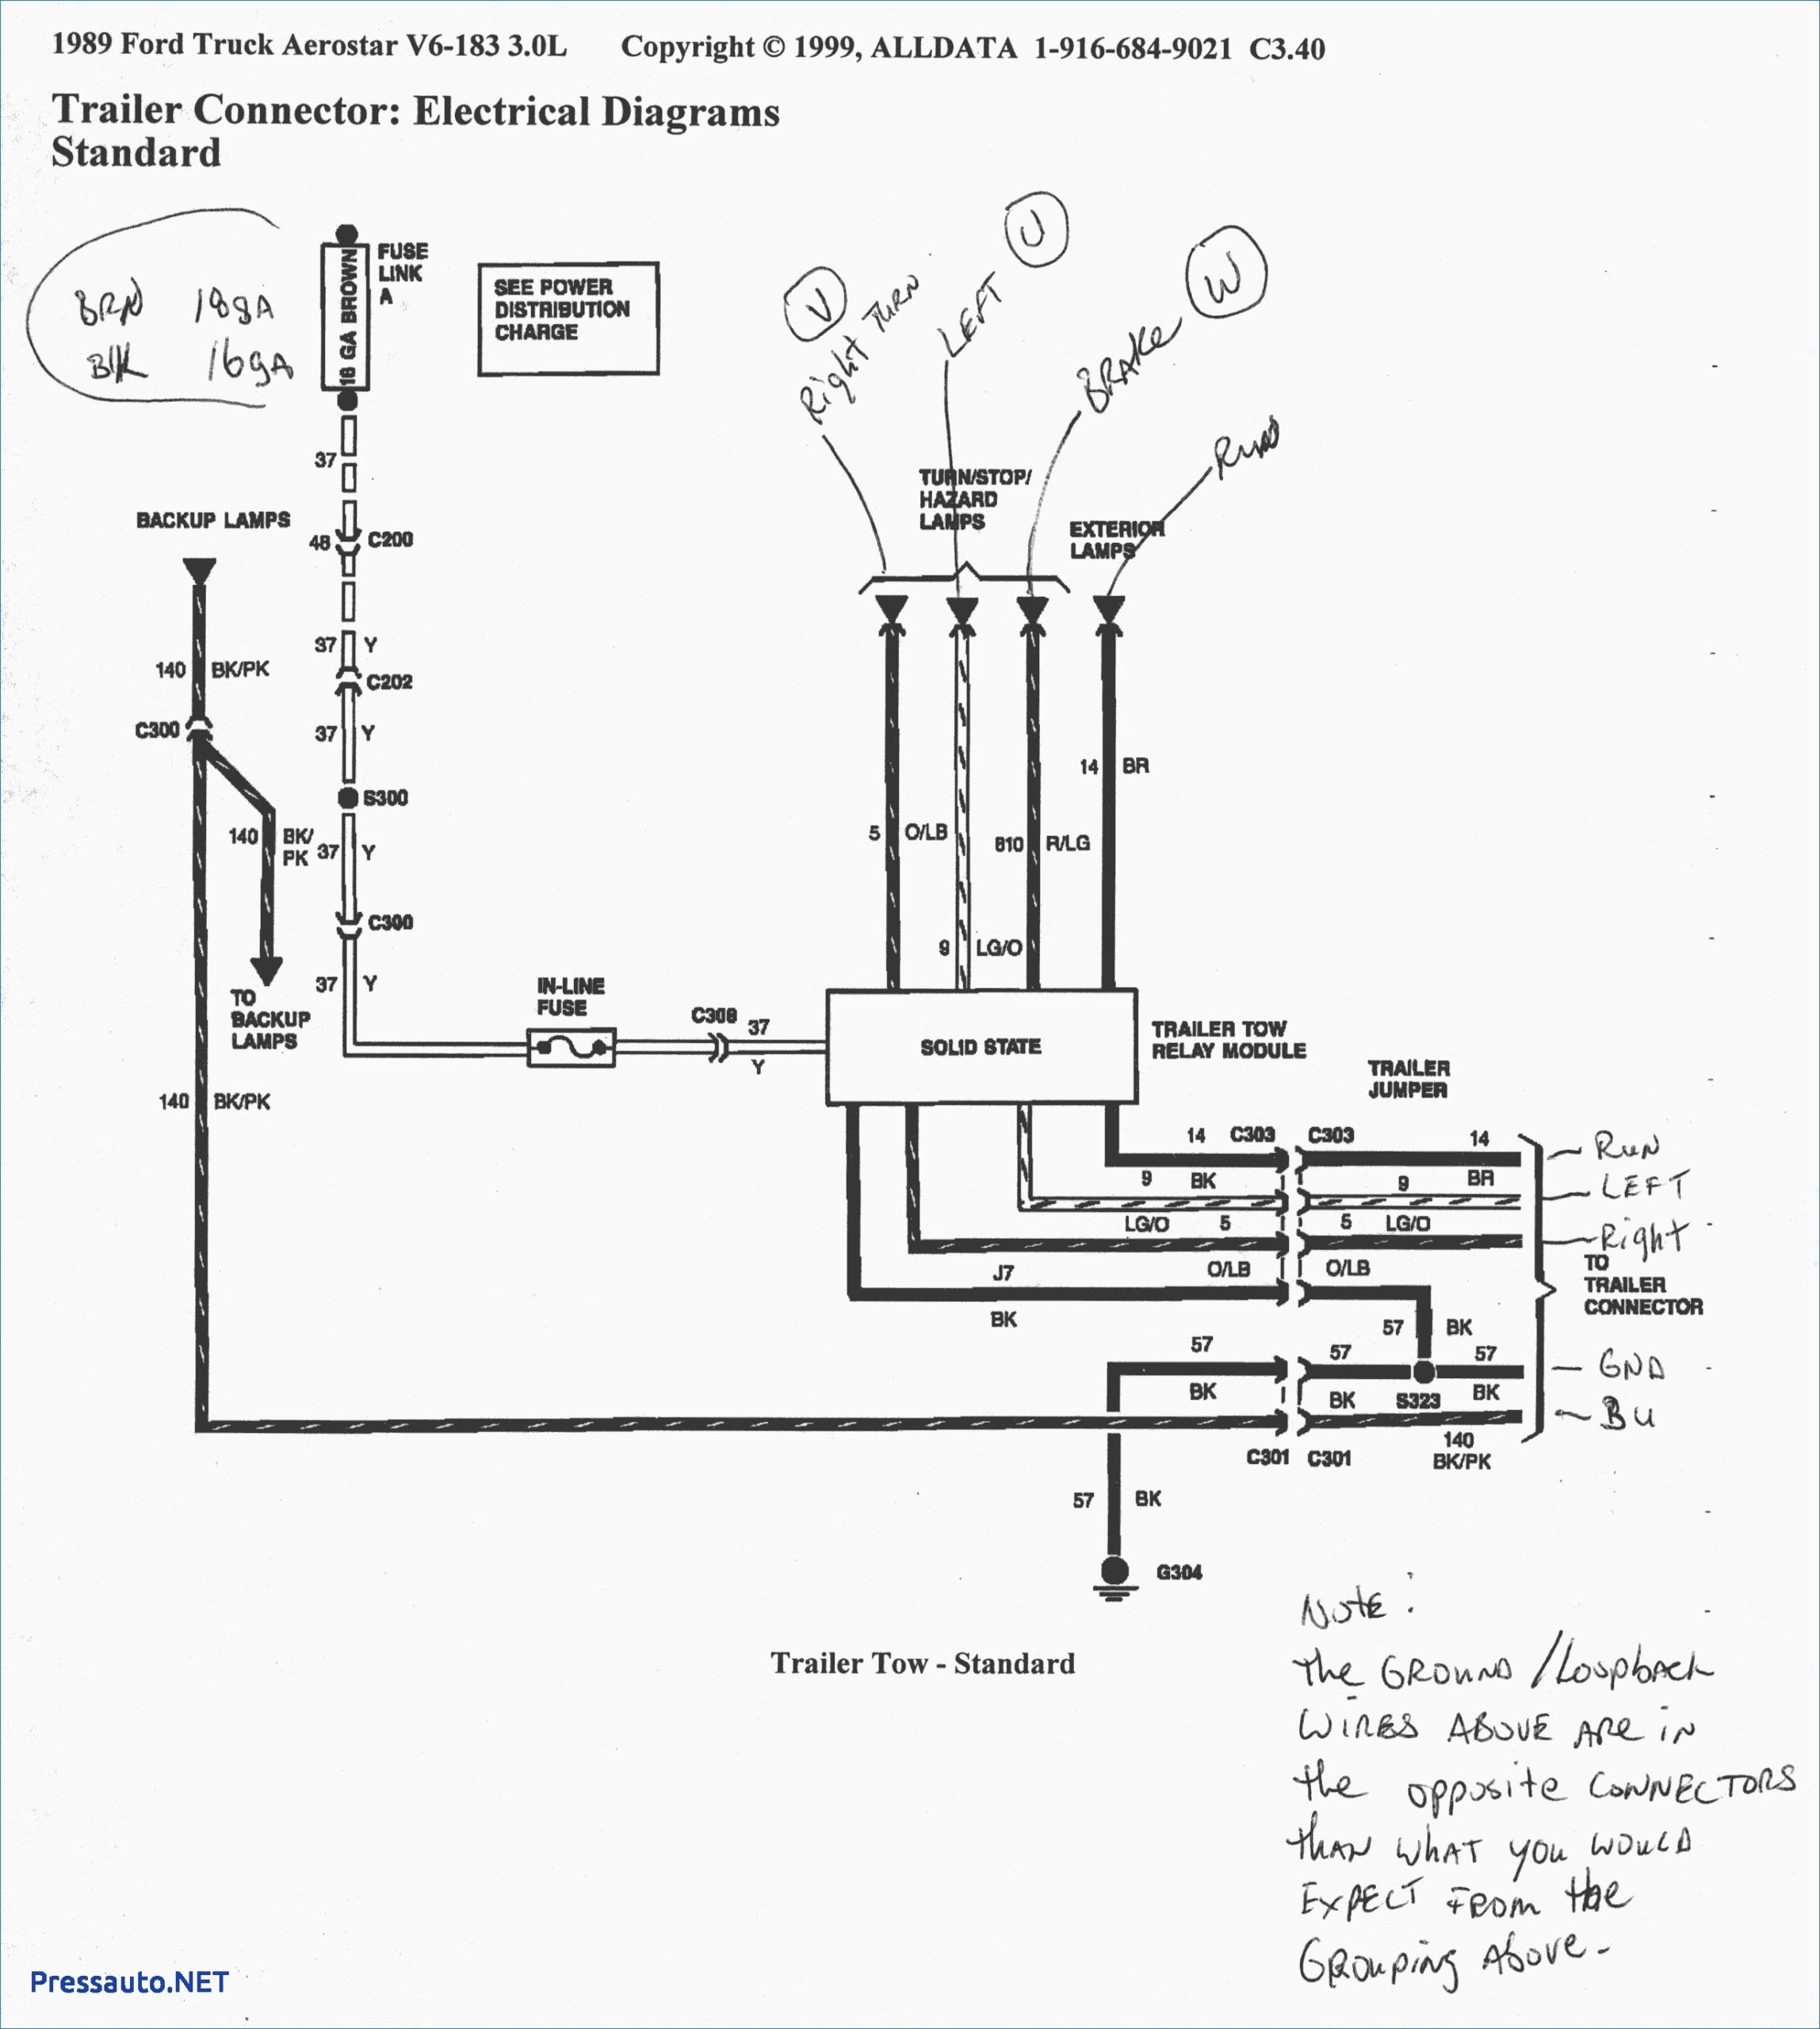 2012 Ford F150 Trailer Wiring Harness Diagram